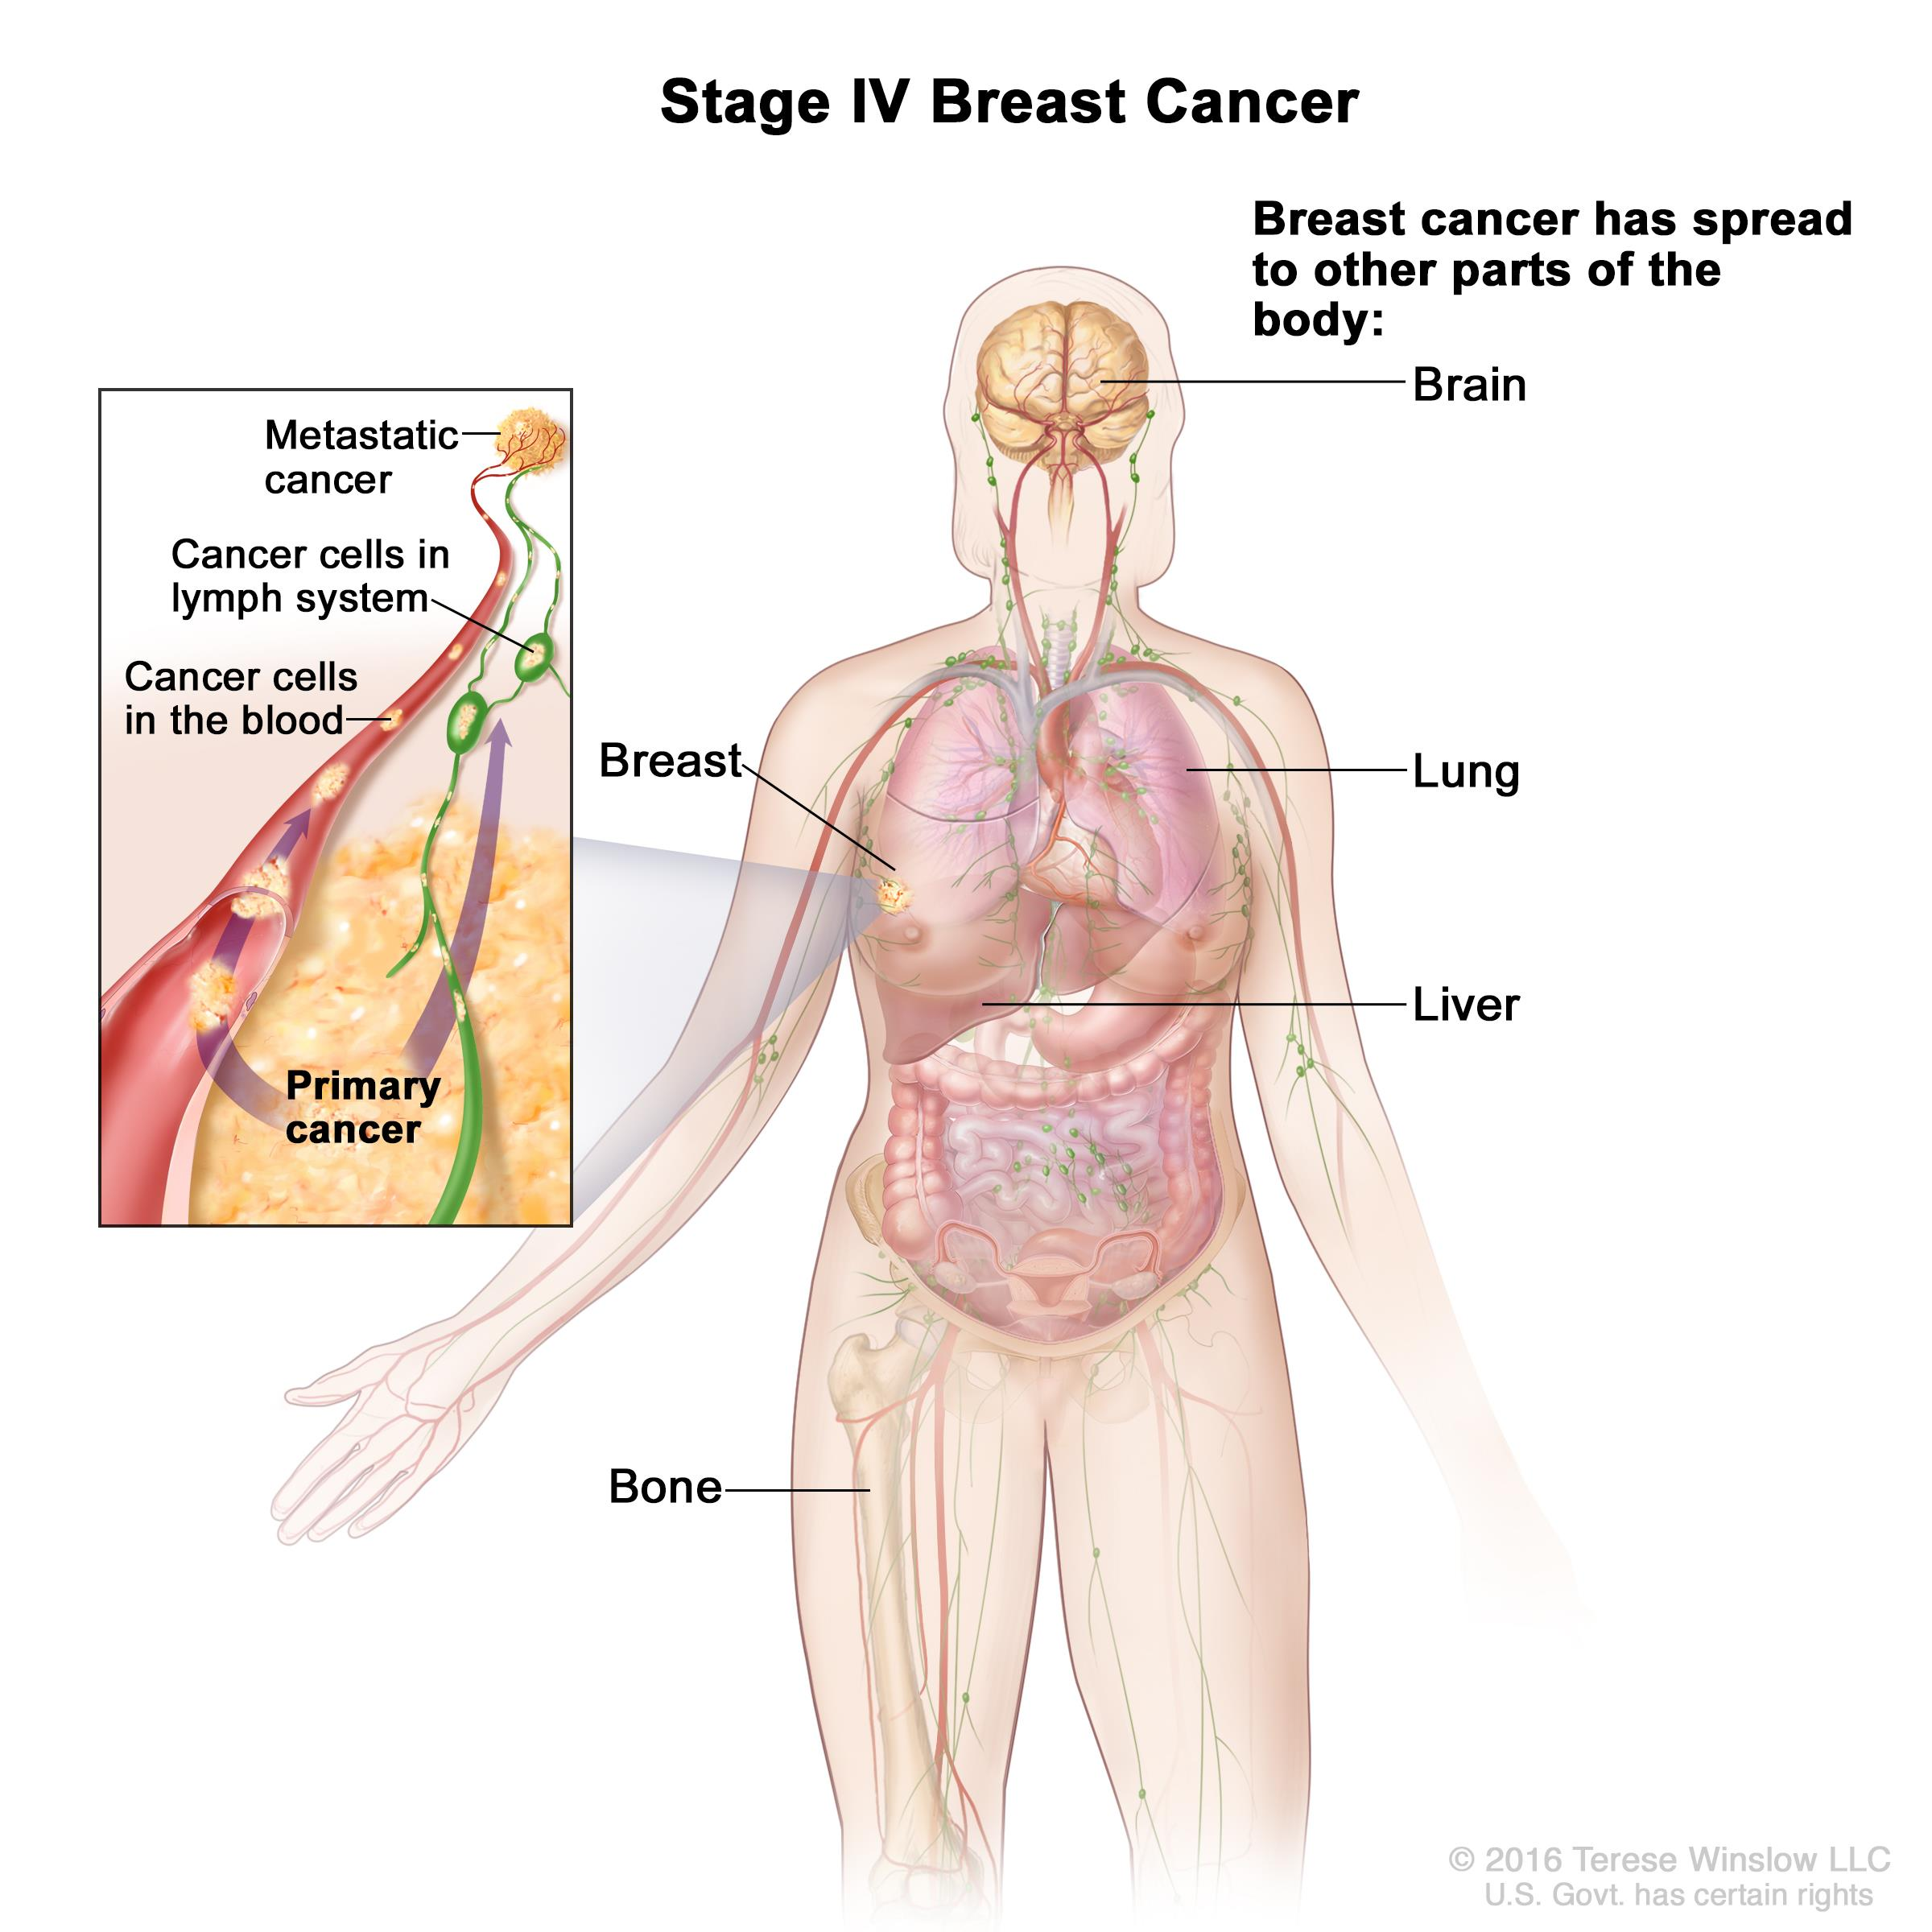 breast cancer and patient information jpg 1152x768